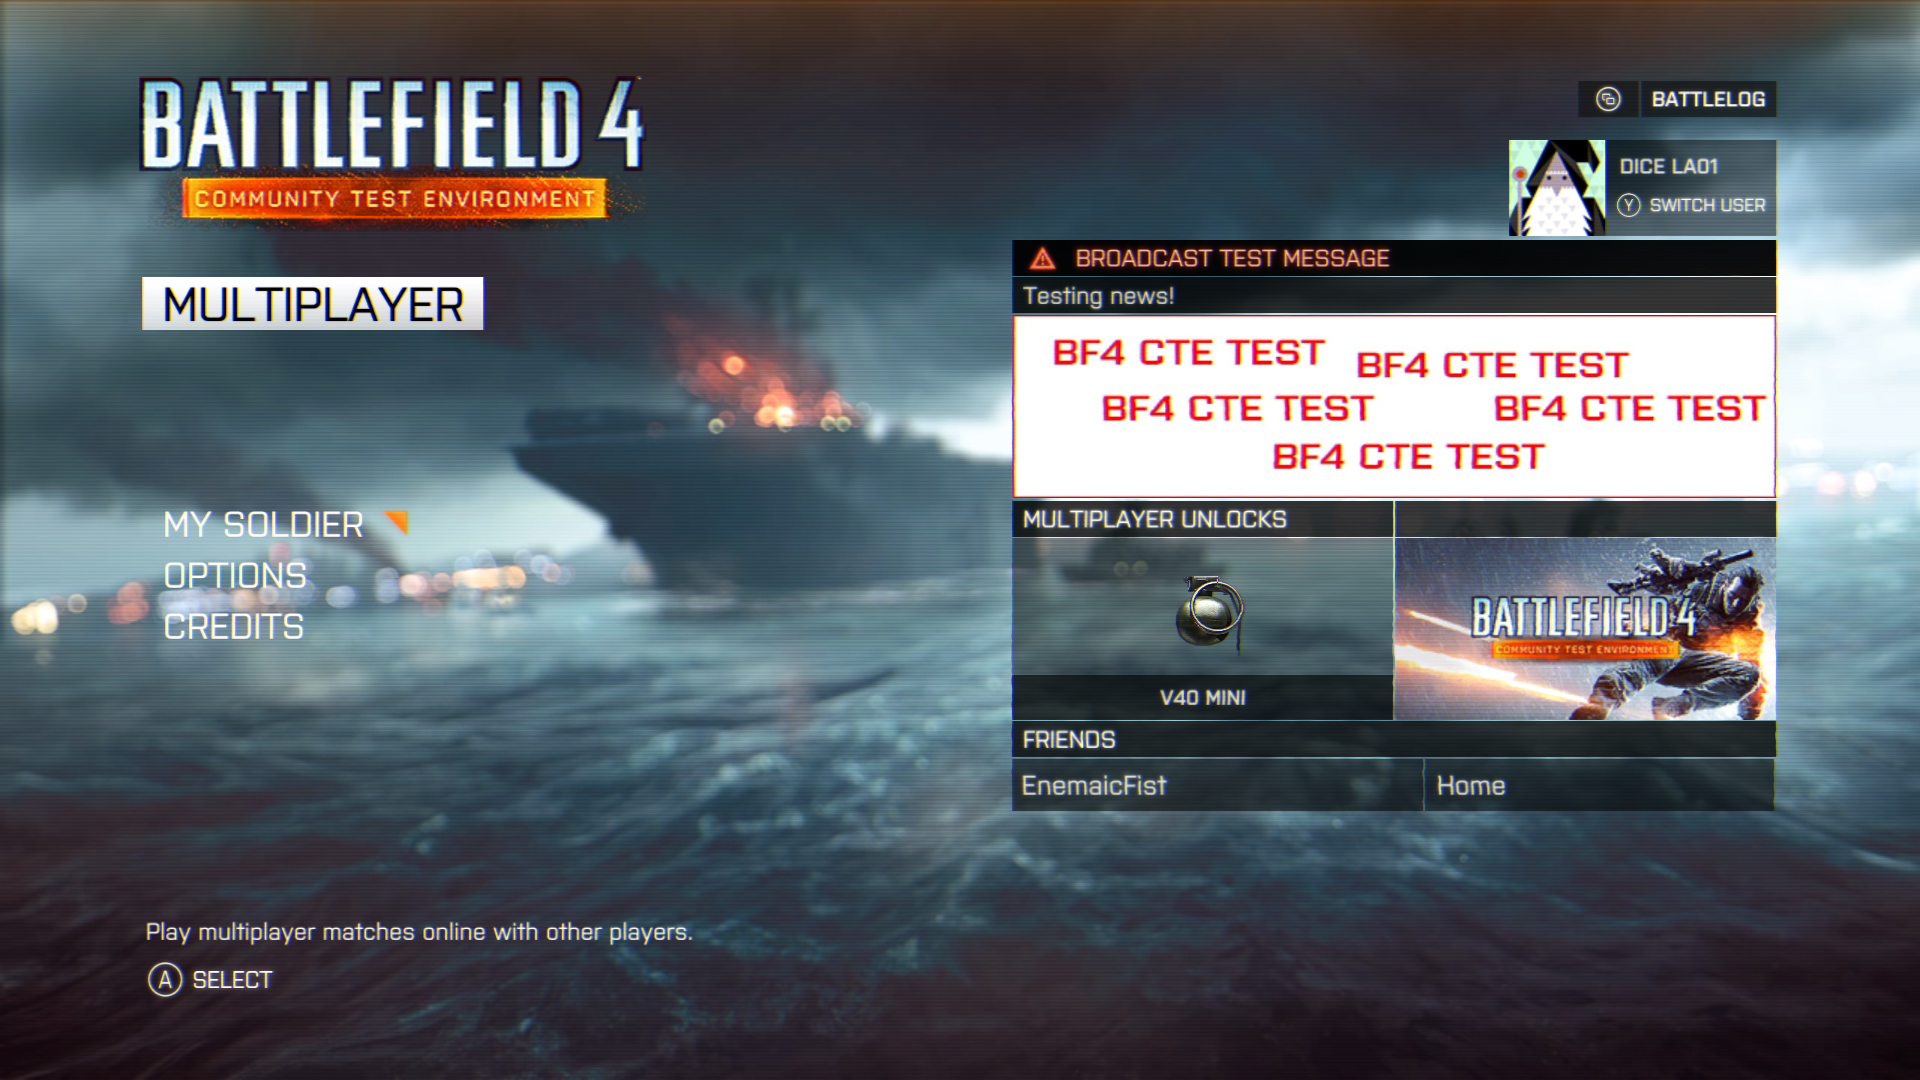 battlefield 4 39 s community test environment cte launches on xbox one battlefield at night. Black Bedroom Furniture Sets. Home Design Ideas